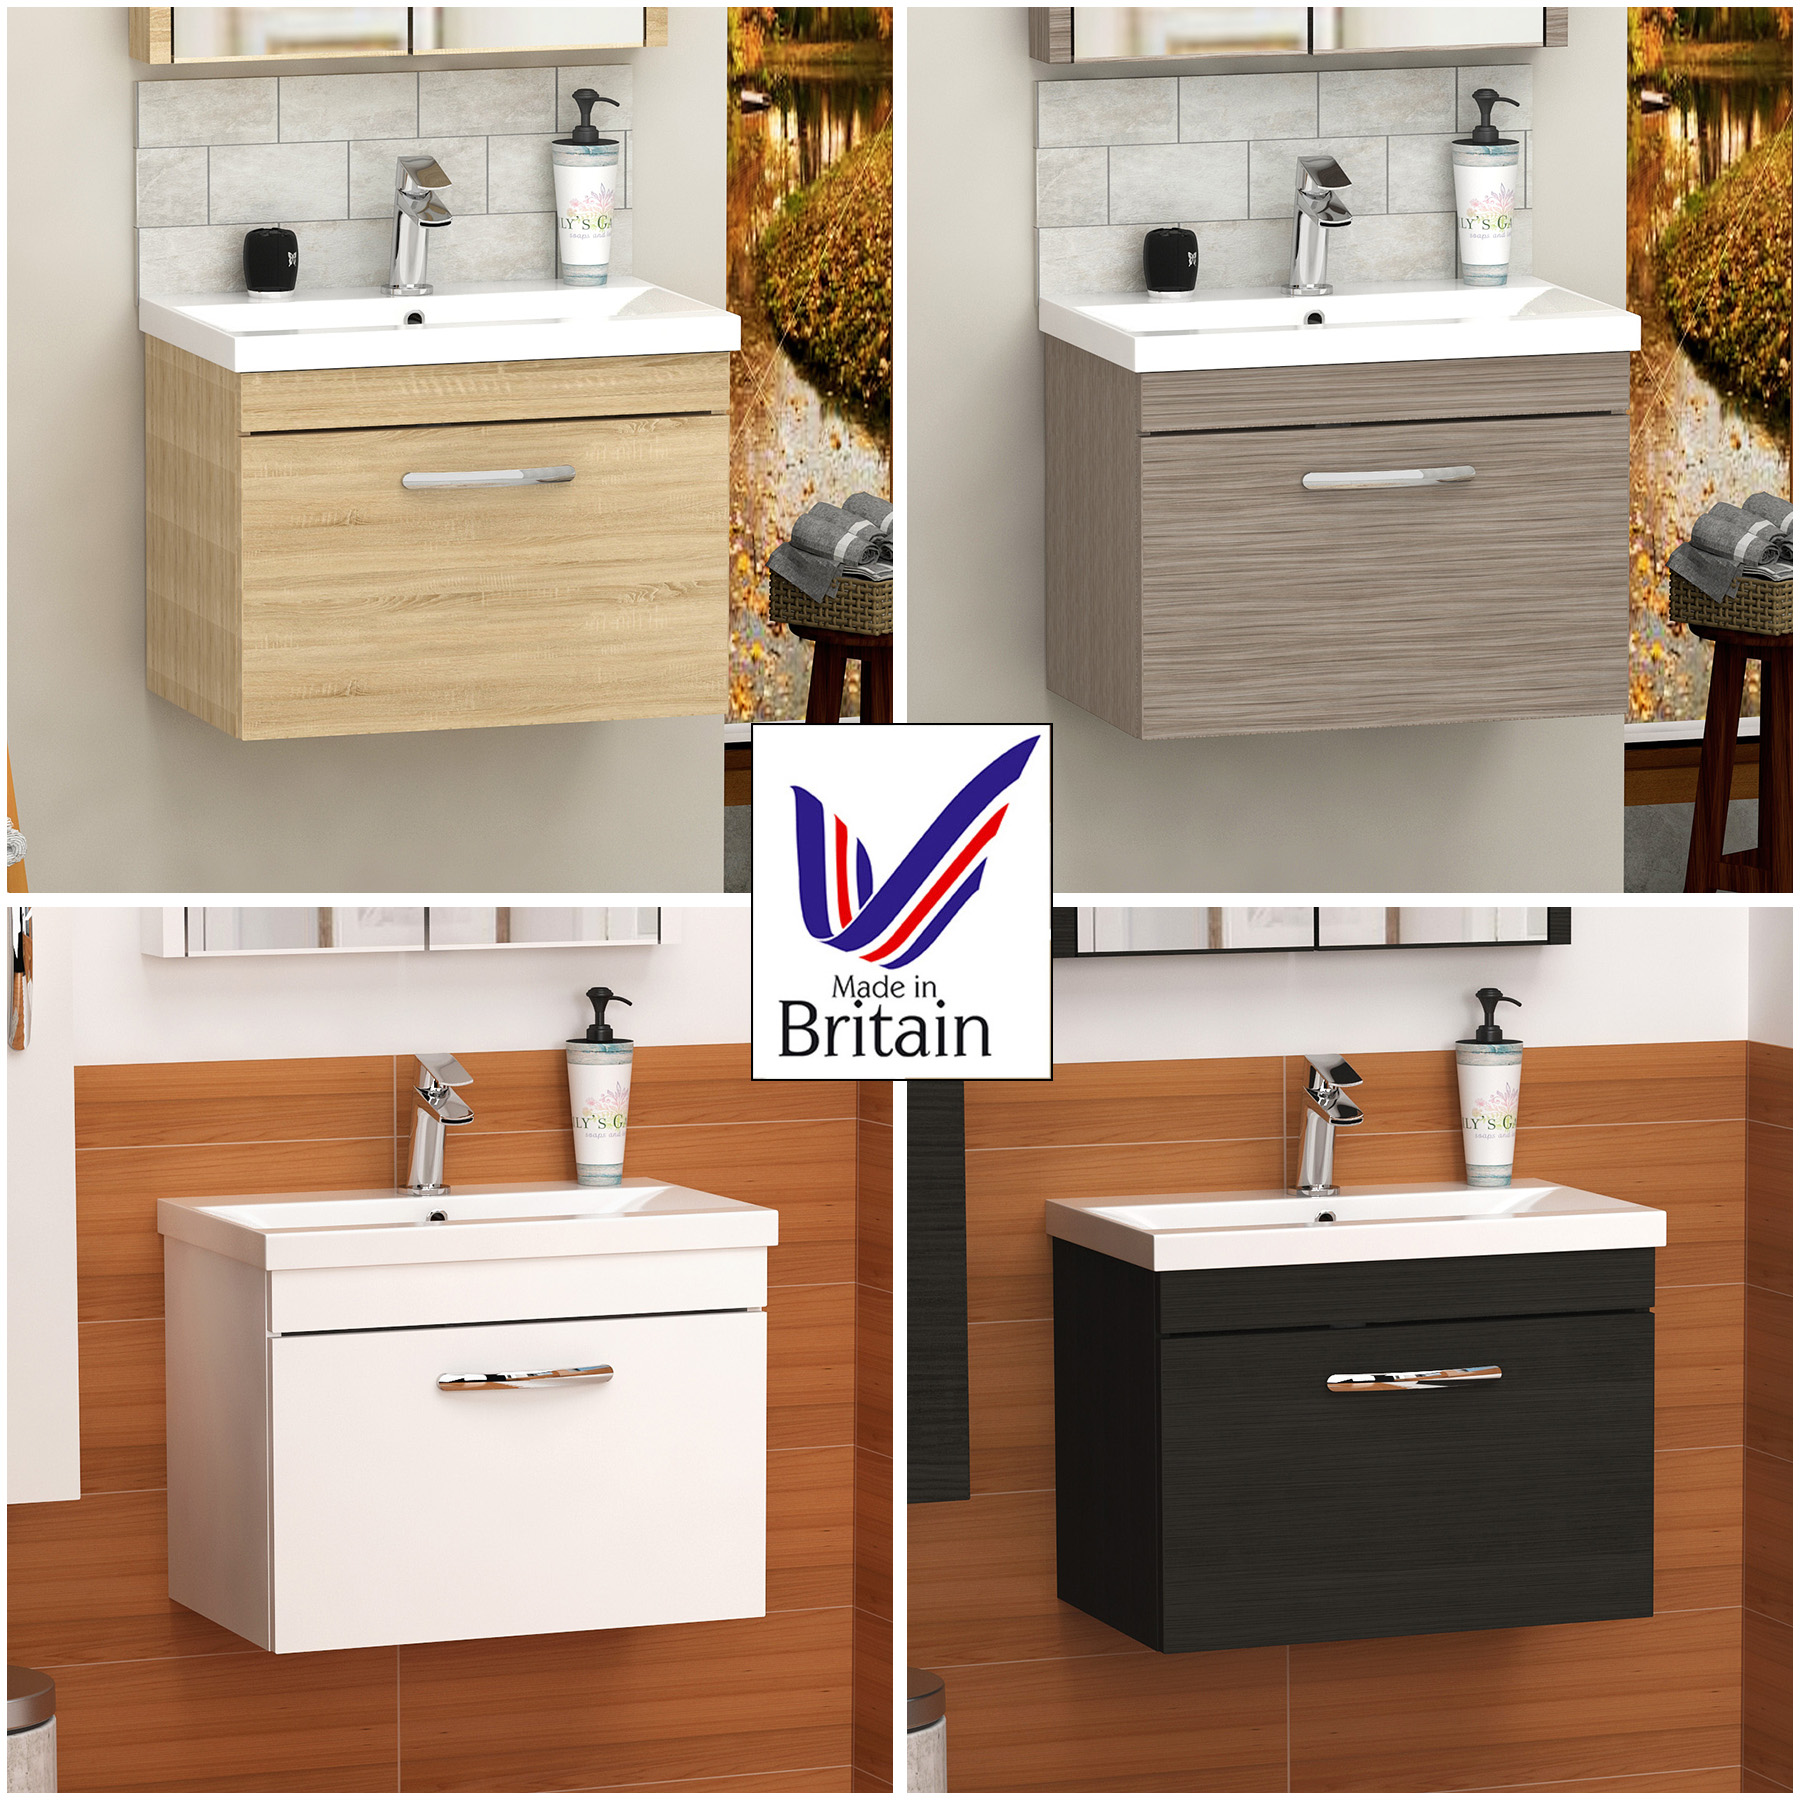 Prime Details About 500 600 800Mm Modern Bathroom Vanity Unit Cabinet Basin Sink Wall Hung 1 Drawer Download Free Architecture Designs Grimeyleaguecom